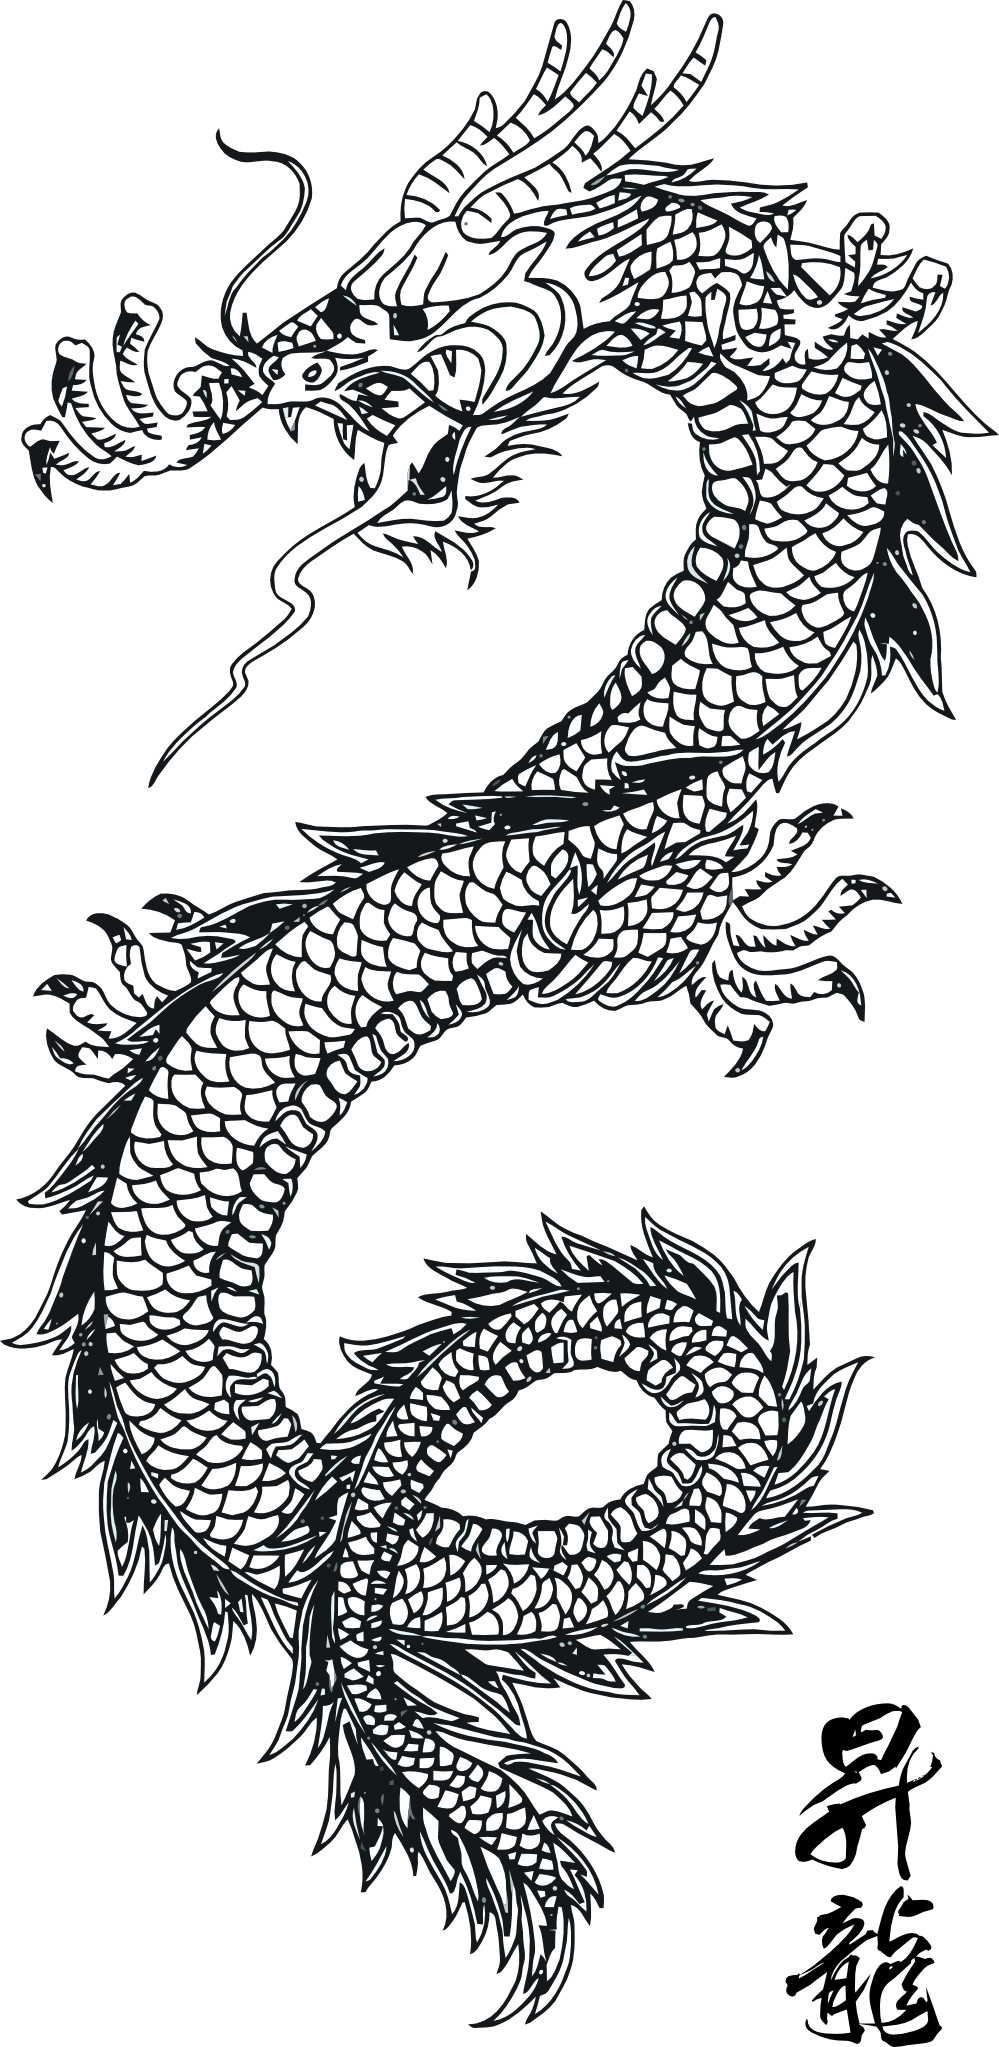 Image Chinese dragon images clip art 1png Fairy Tail Oc Wiki